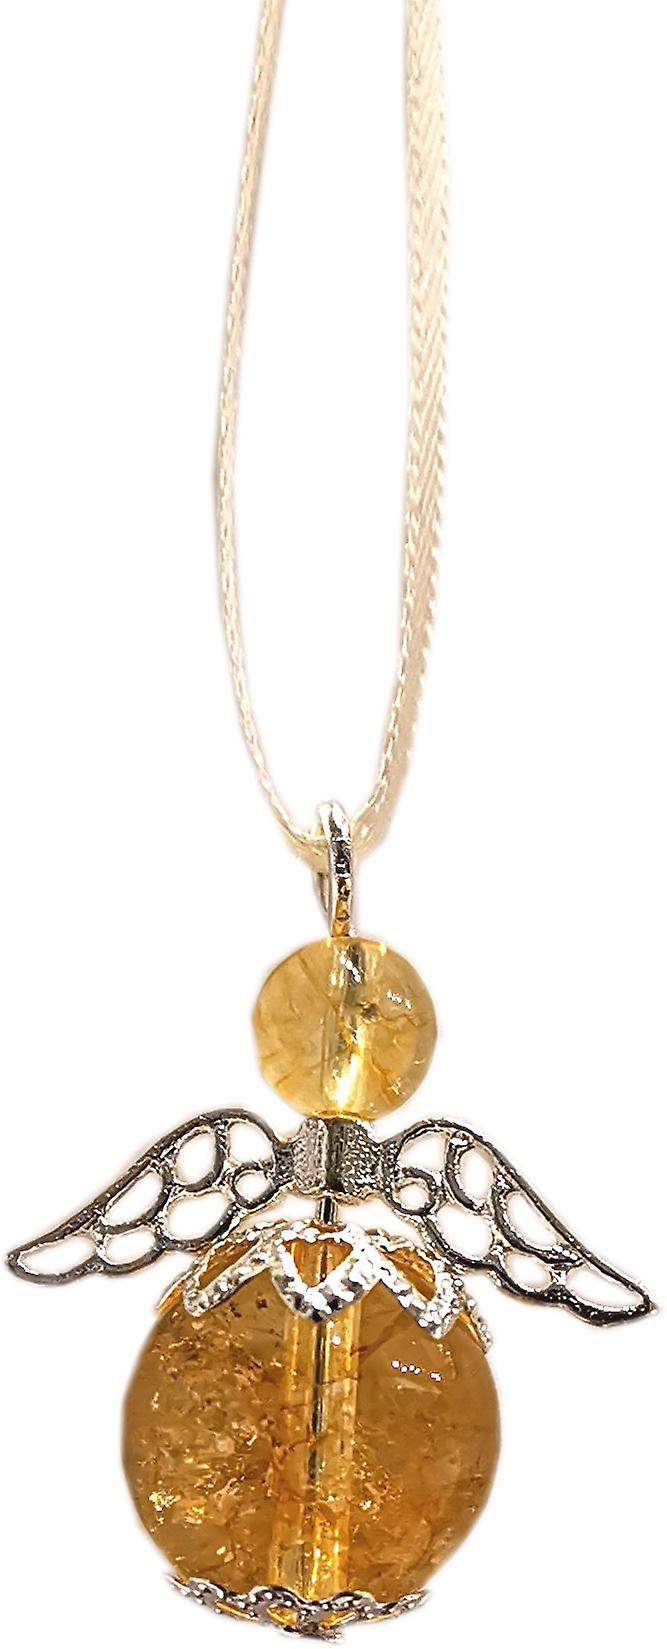 Nyleve Designs handmade Hanging Semi-precious Citrine Gemstone Guardian Angel in Silver Plated